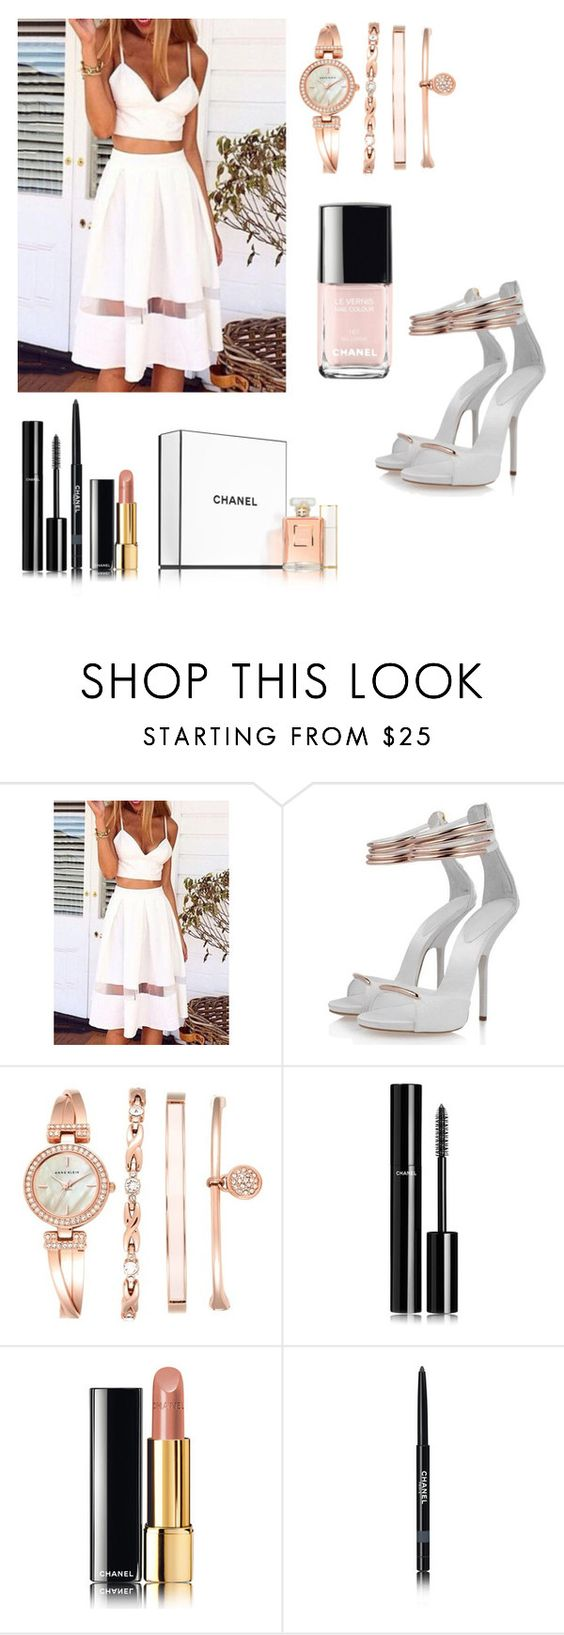 """Coco"" by daykay ❤ liked on Polyvore featuring Posh Girl, Anne Klein and Chanel"